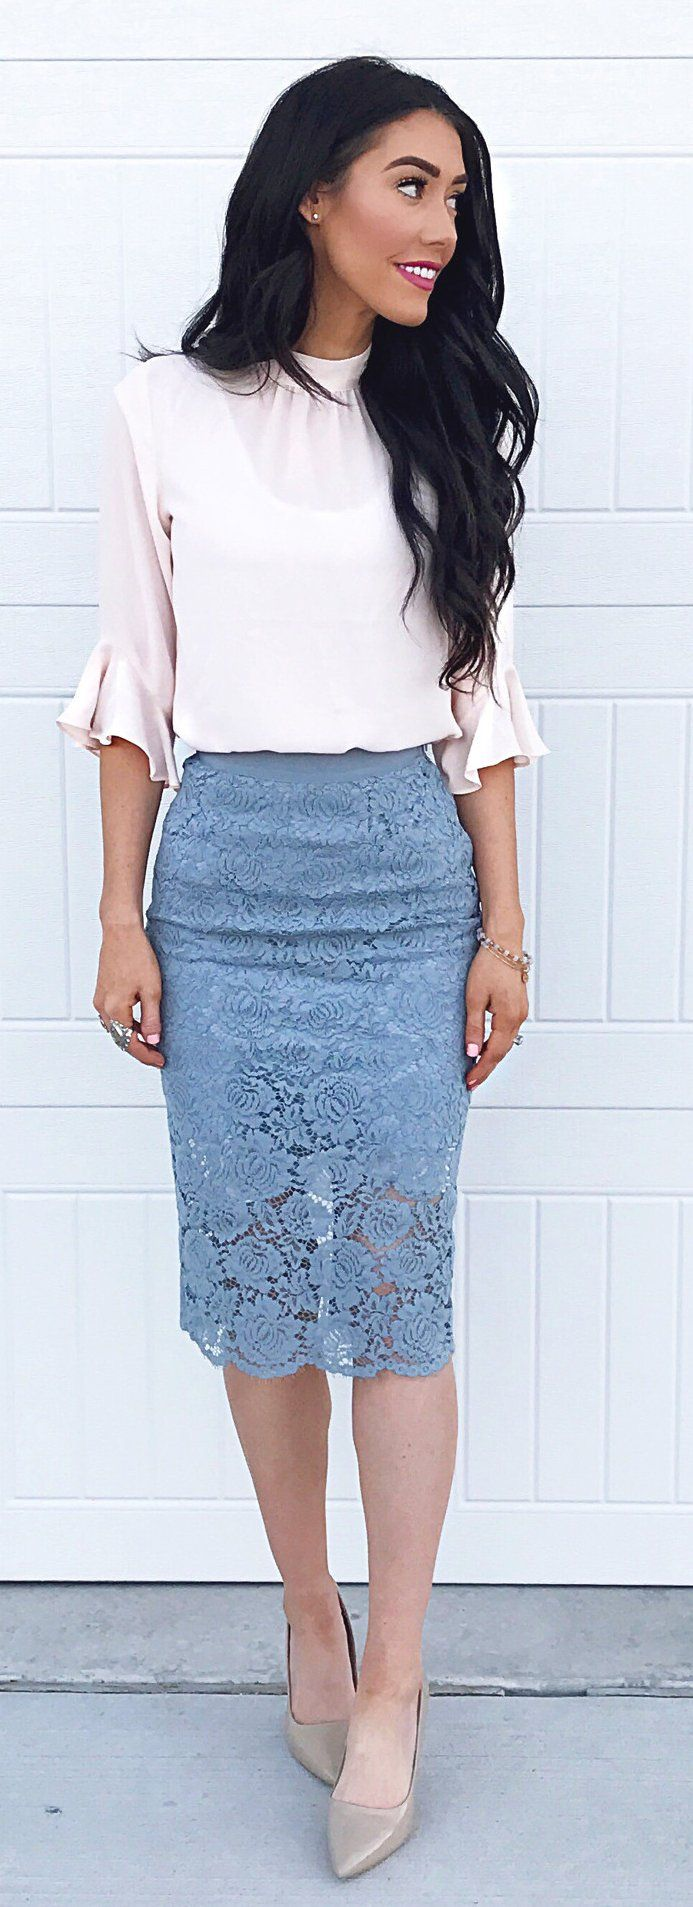 White Blouse & Grey Lace Skirt & Grey Pumps